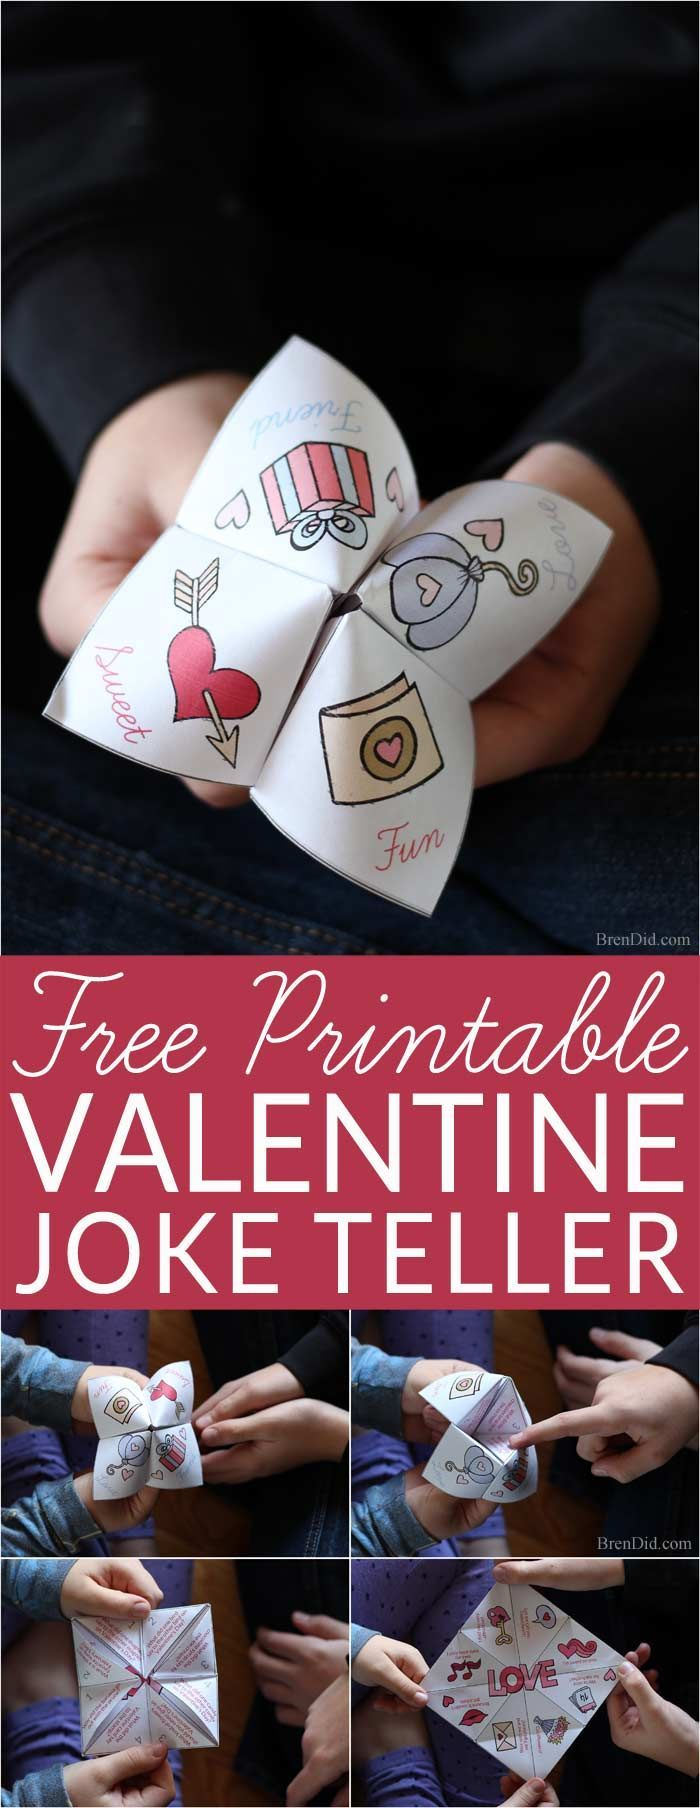 Fun idea for kids! Silly fortune teller (cootie catcher) filled with kid friendly Valentine jokes. Get your free printable Valentine Joke Teller for non-candy Valentines, Valentine gifts, and family fun.